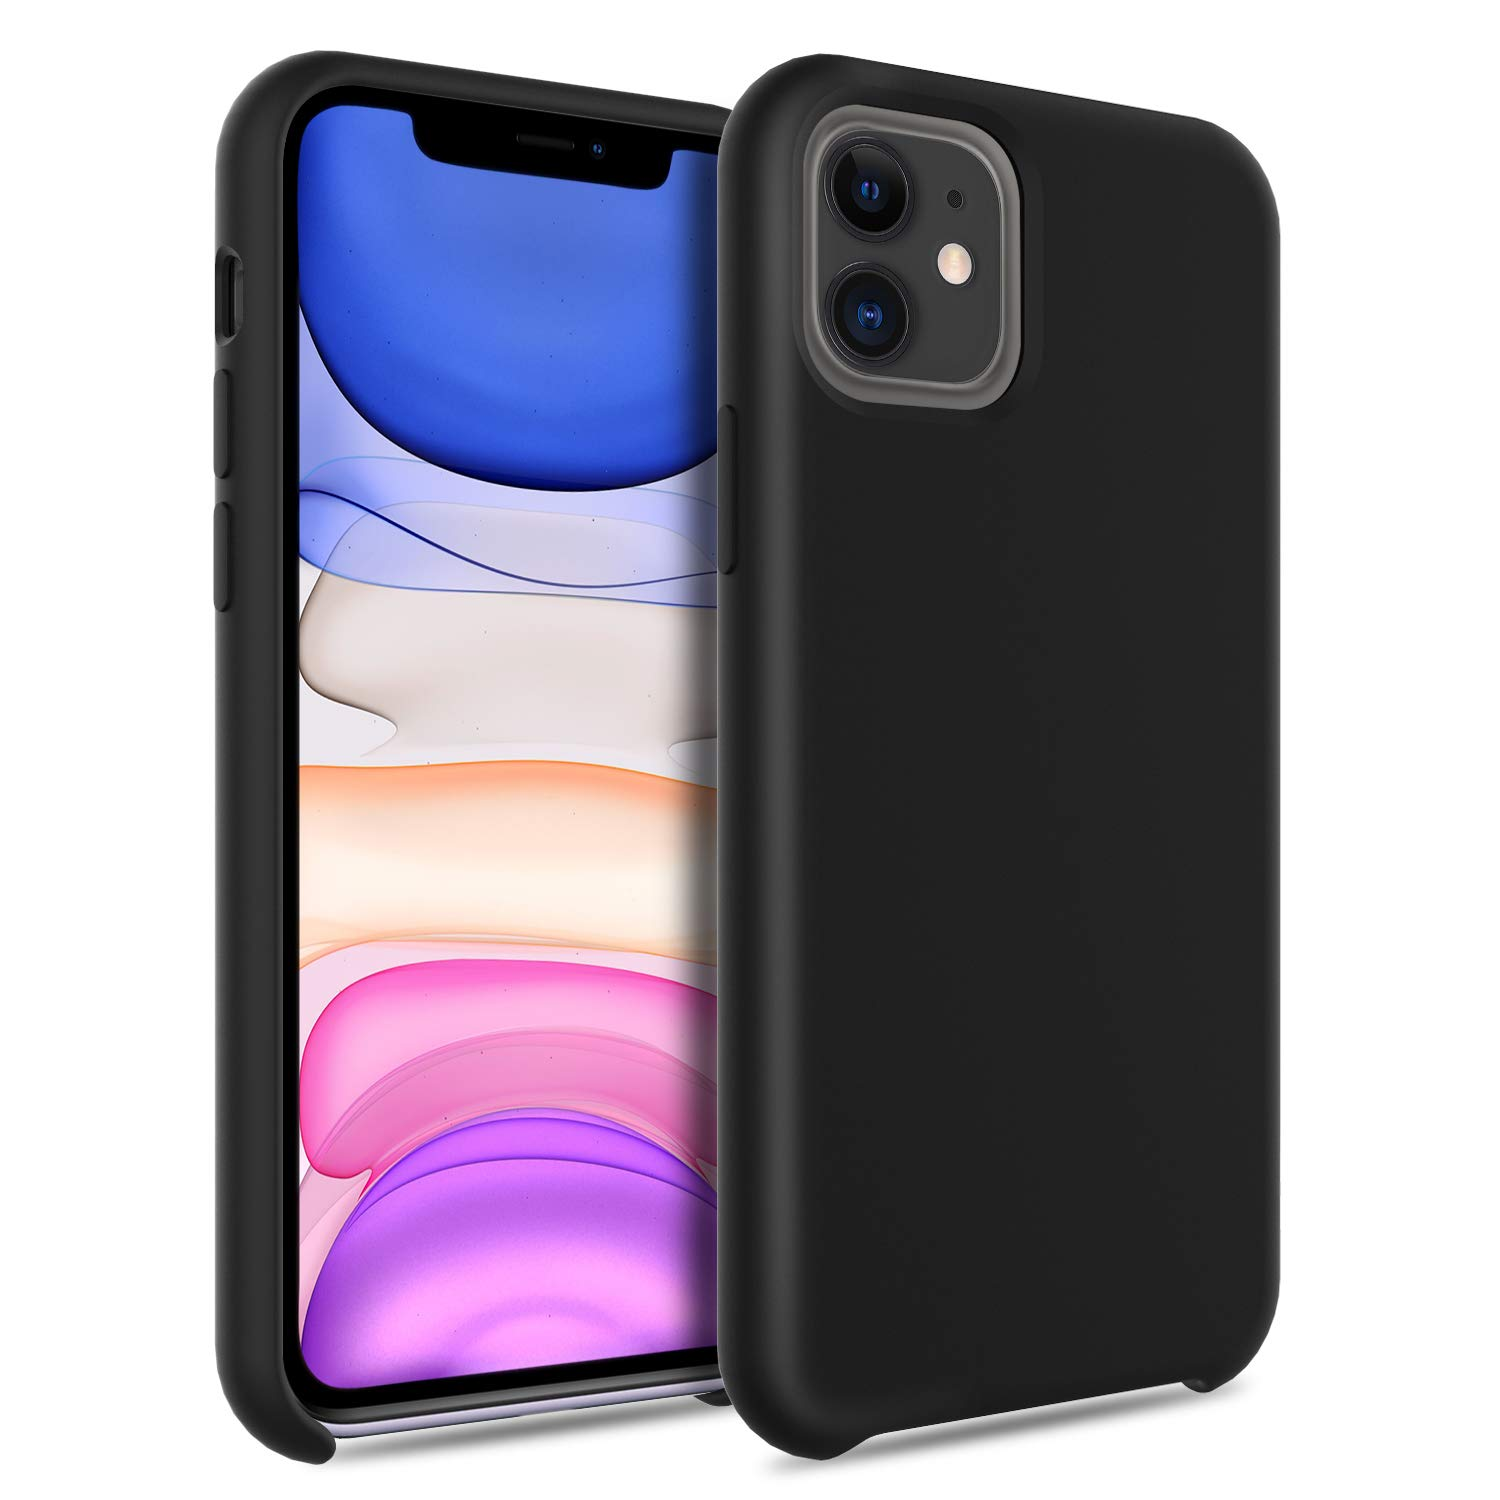 DONWELL Compatible iPhone 11 Case Slim Hard Shell Shockproof Protective Solid Silicone Bumper Anti-Slip Case Cover Compatible with iPhone 11 / iPhone 11R 6.1 inch 2019 (Black)